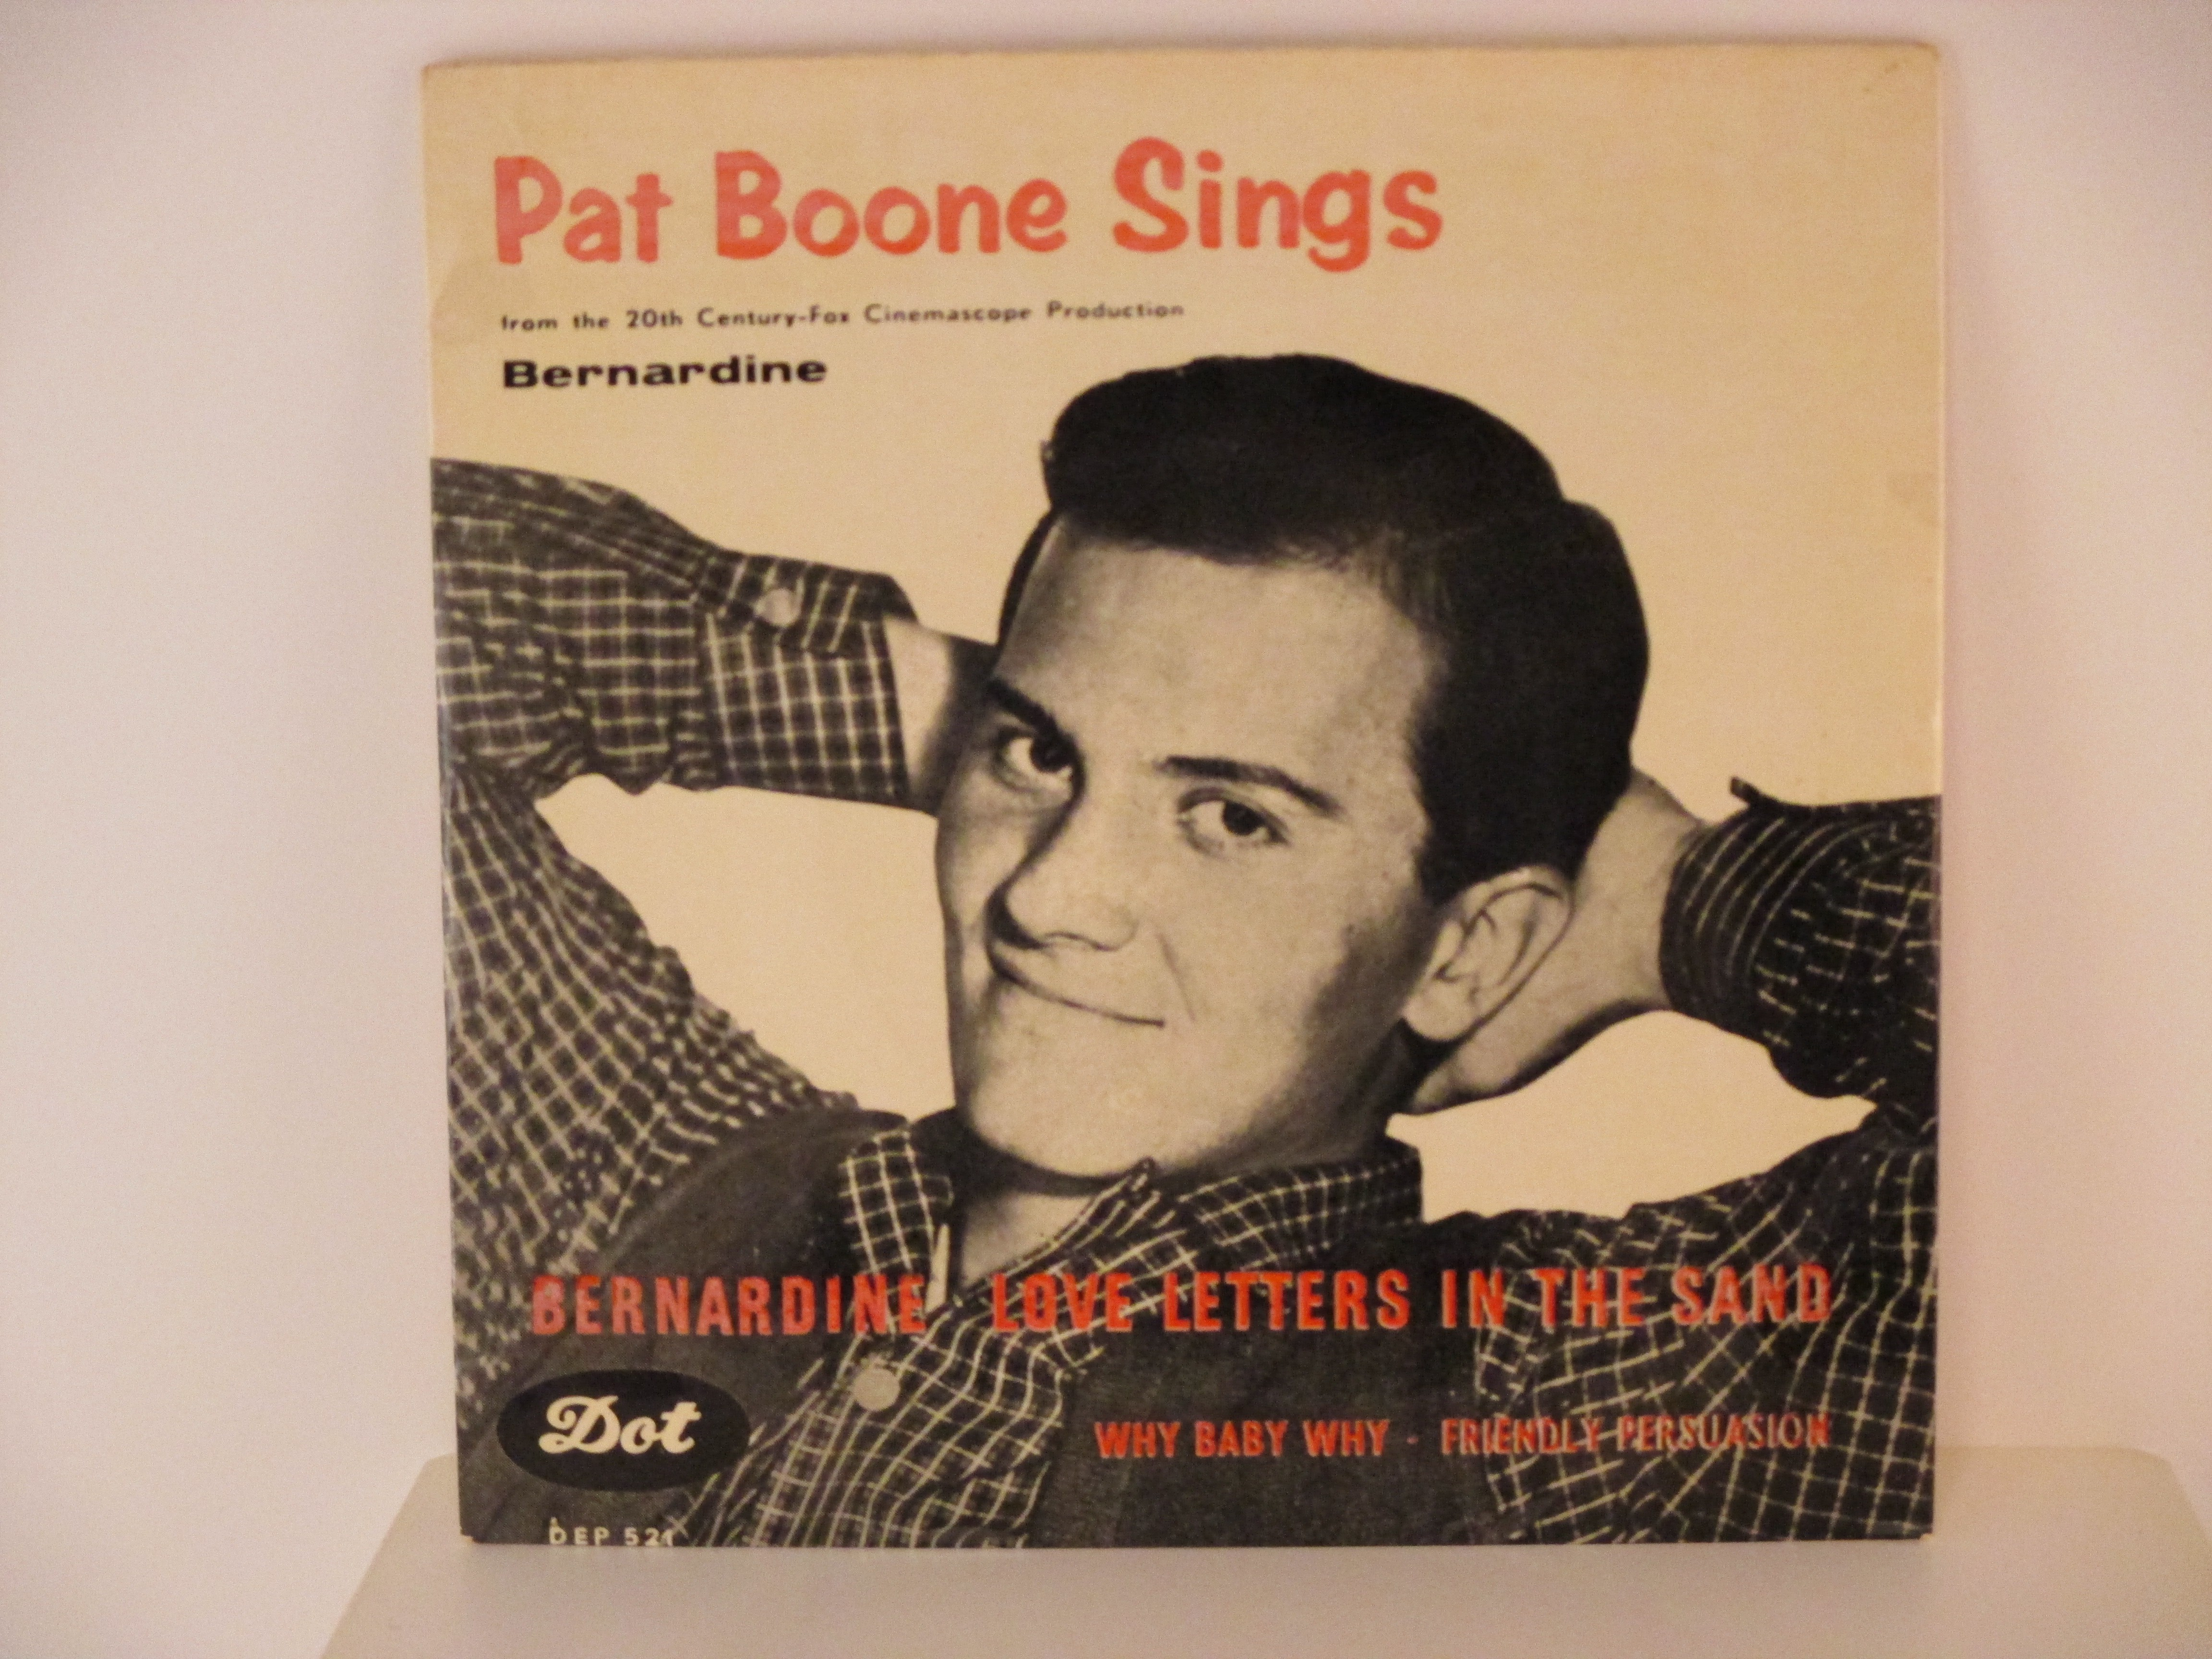 PAT BOONE : (EP) Bernardine / Love letters in the sand / Why baby why / Friendly persuasion